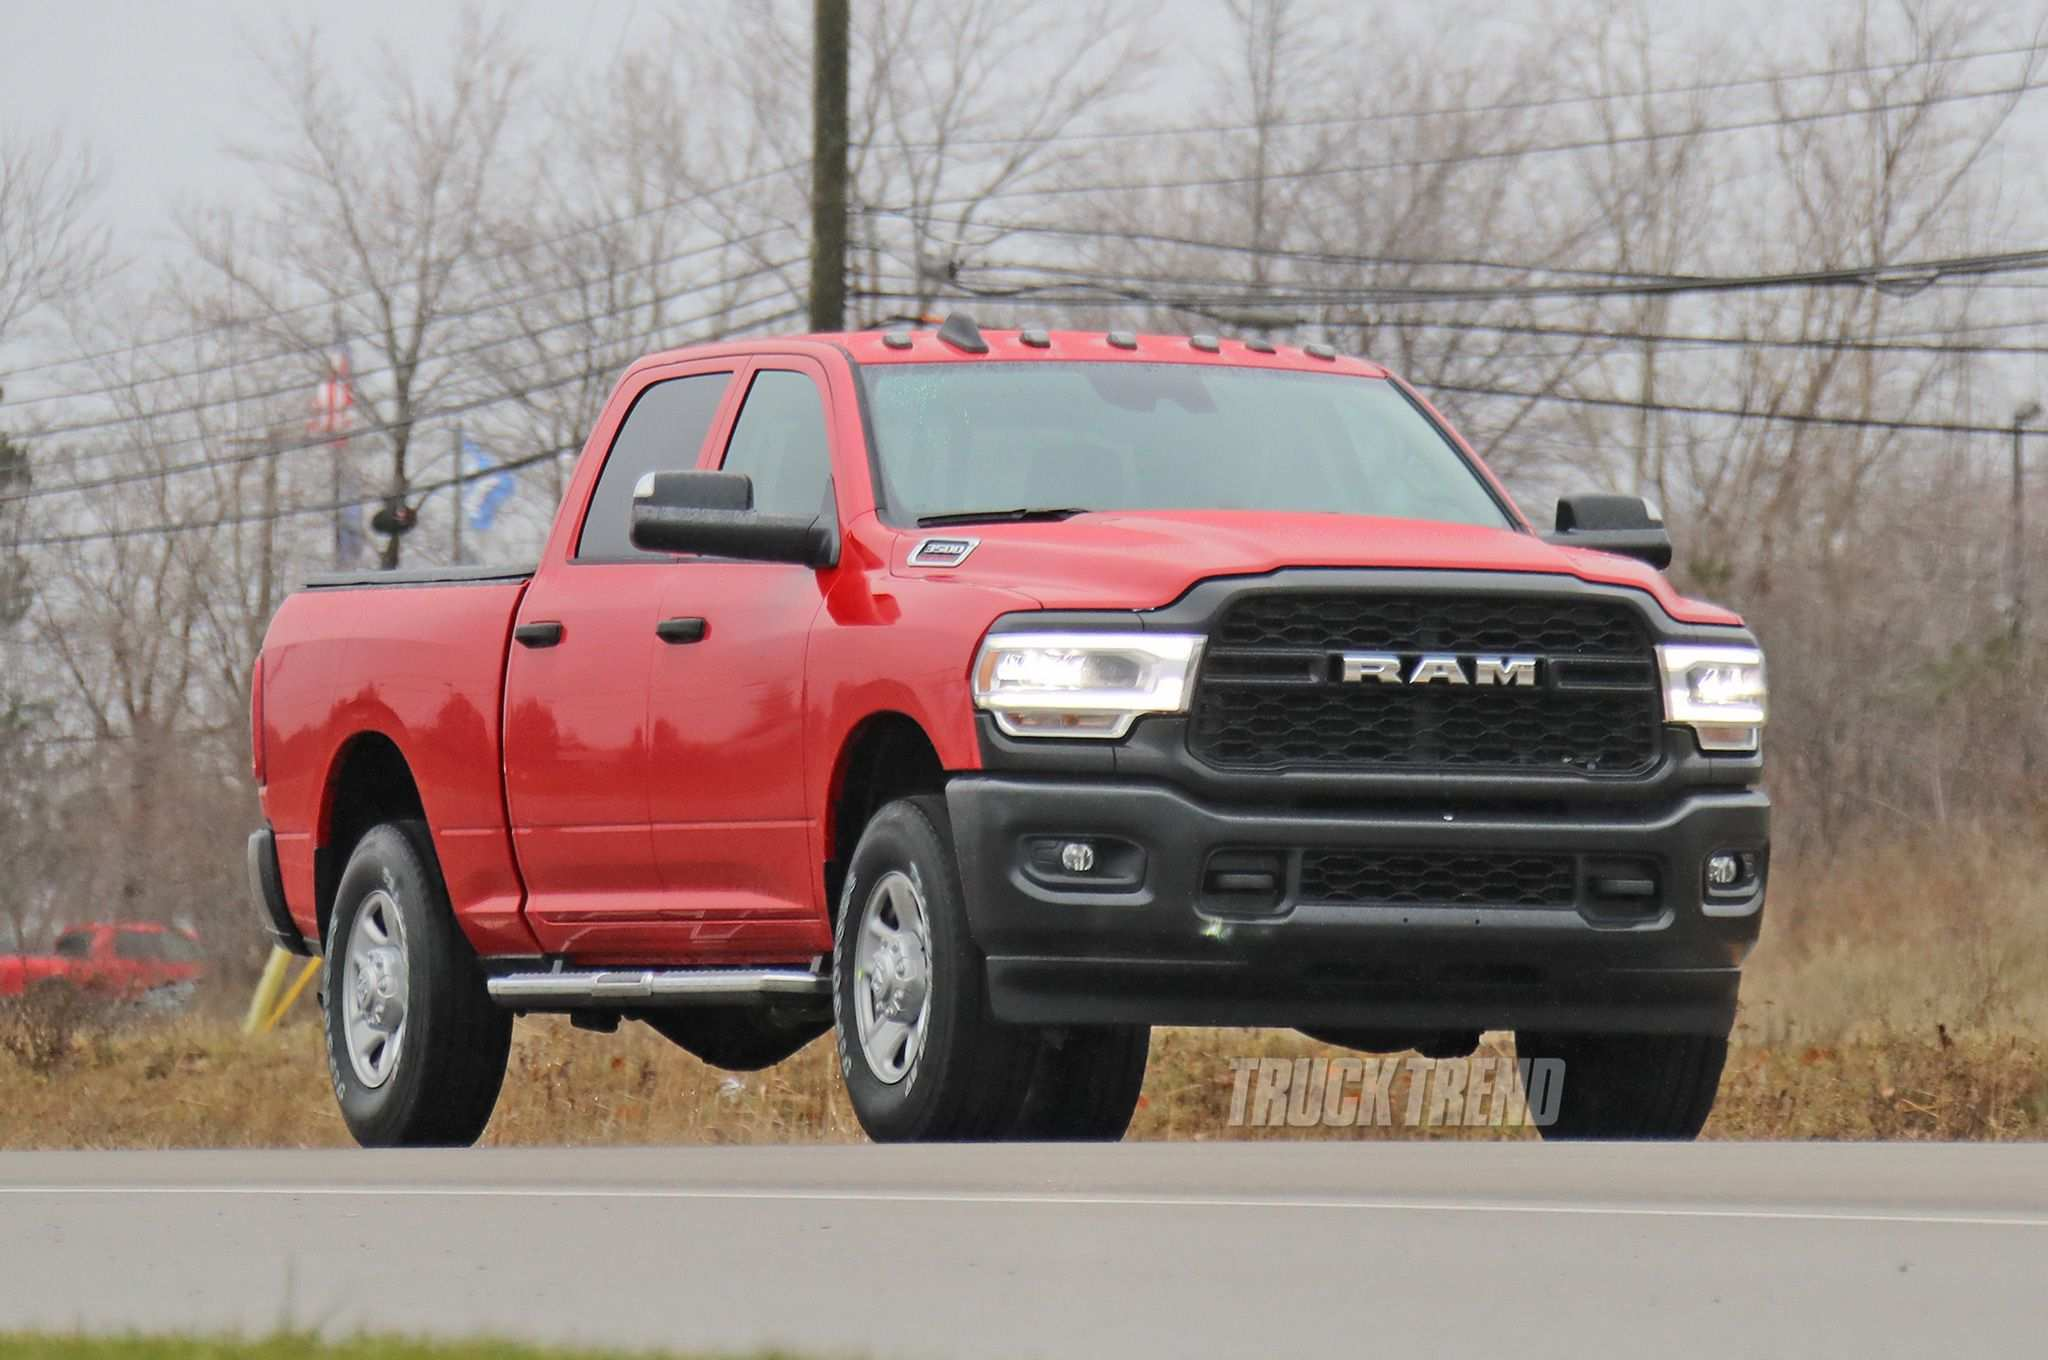 72 Gallery of 2020 Dodge Ram 3500 Price with 2020 Dodge Ram 3500